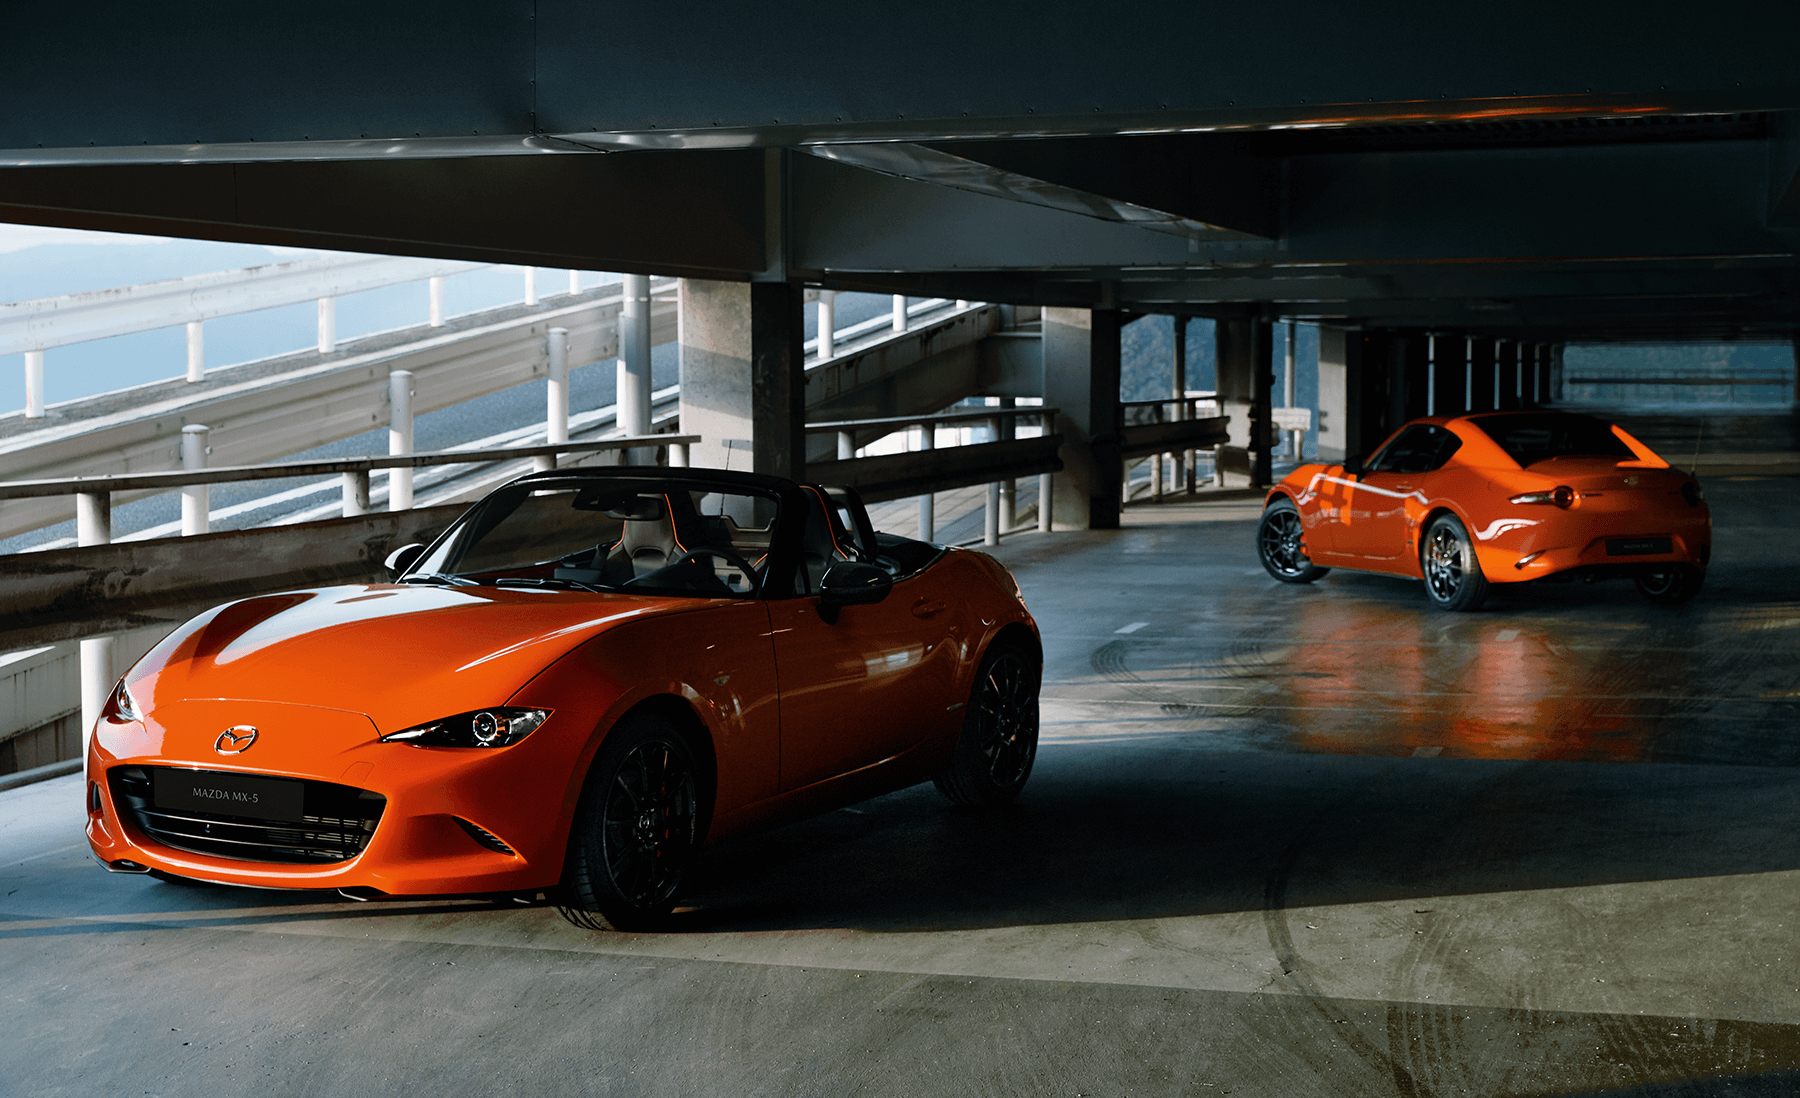 https://dittliag.mazda.ch/wp-content/uploads/sites/86/2019/07/ch_home_slider_01.png